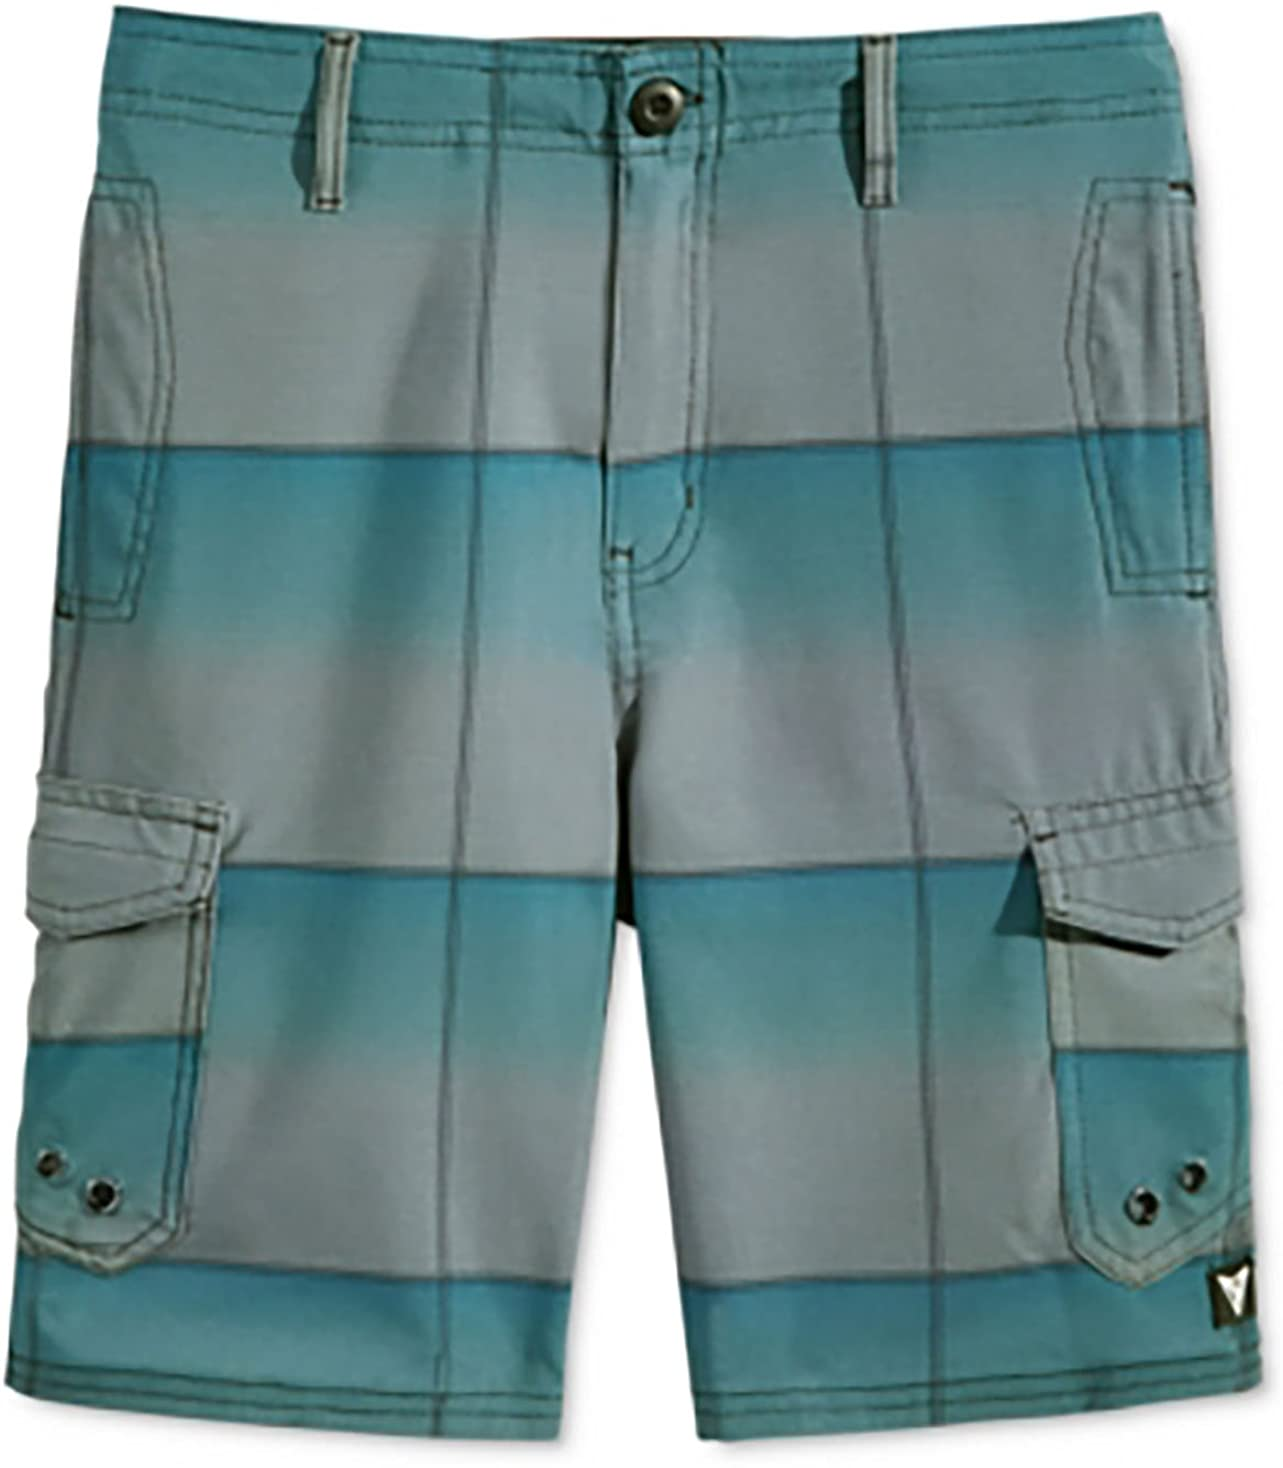 Univibe Amphibious Land-to-Water Shorts Blue